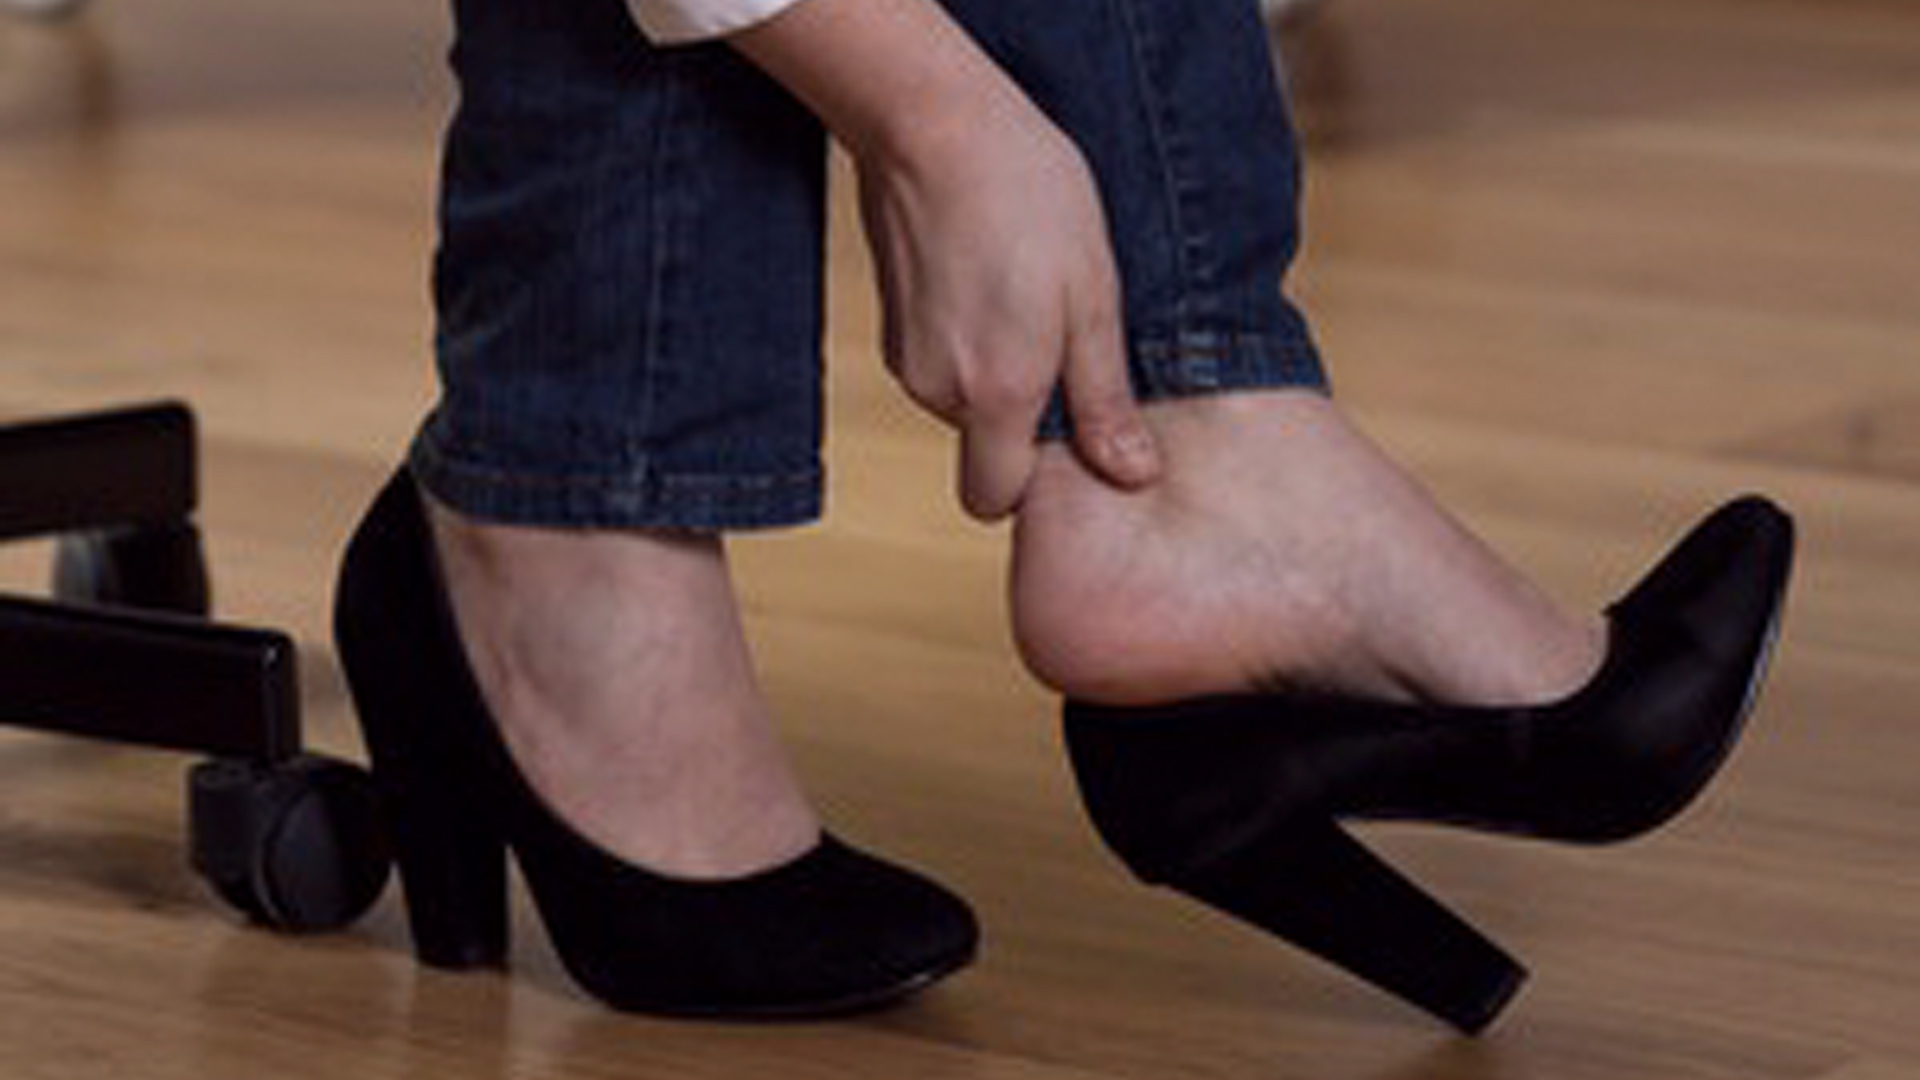 Could Better Shoes Help My Back Pain?